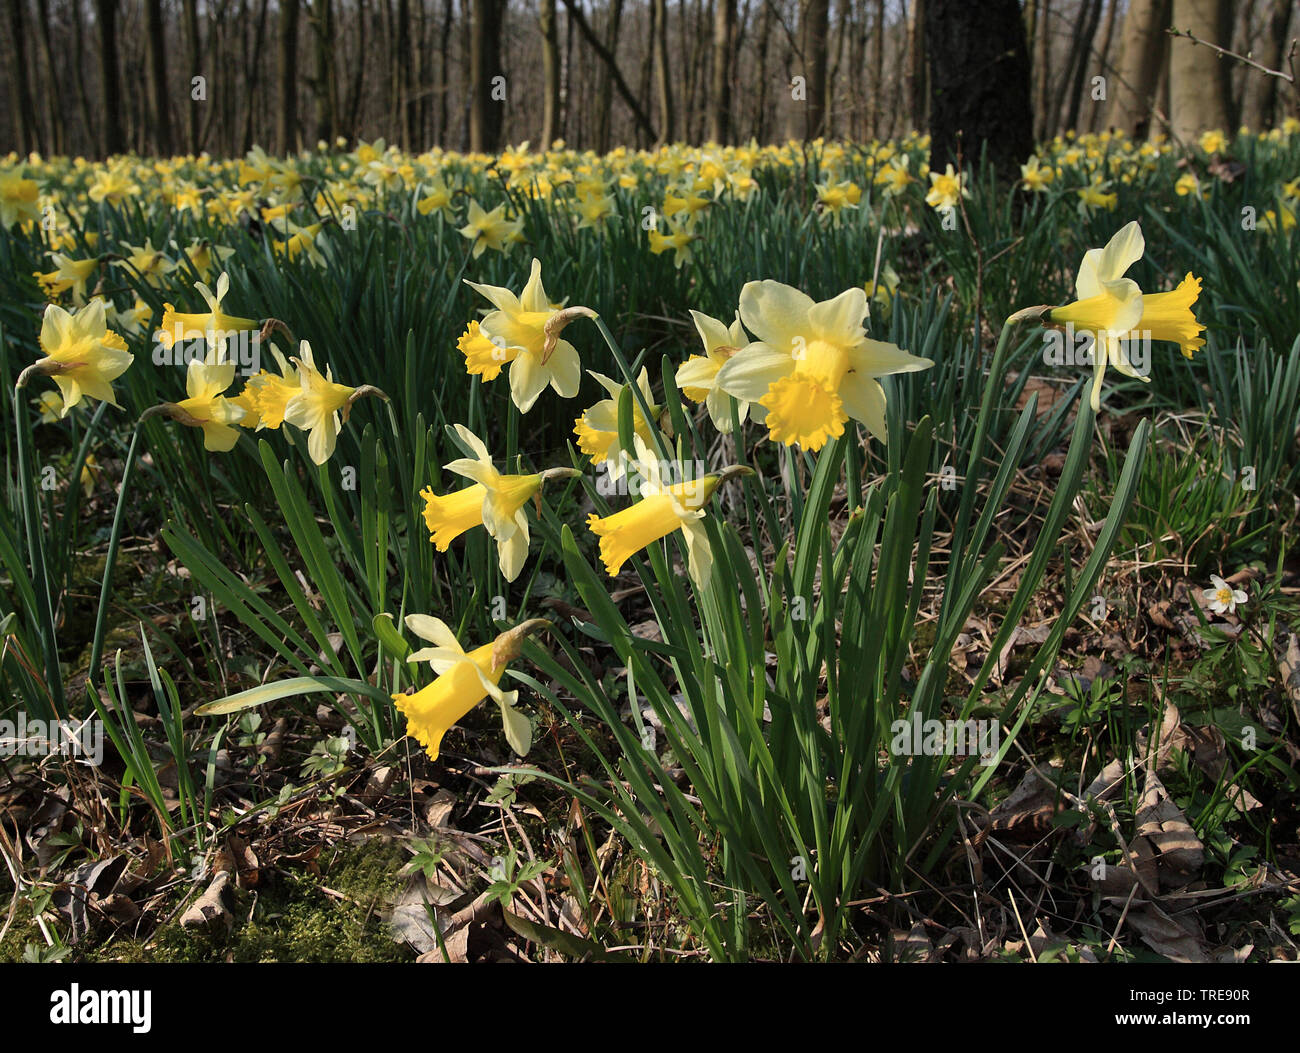 common daffodil (Narcissus pseudonarcissus), blooming wild daffodills in a forest, Netherlands Stock Photo